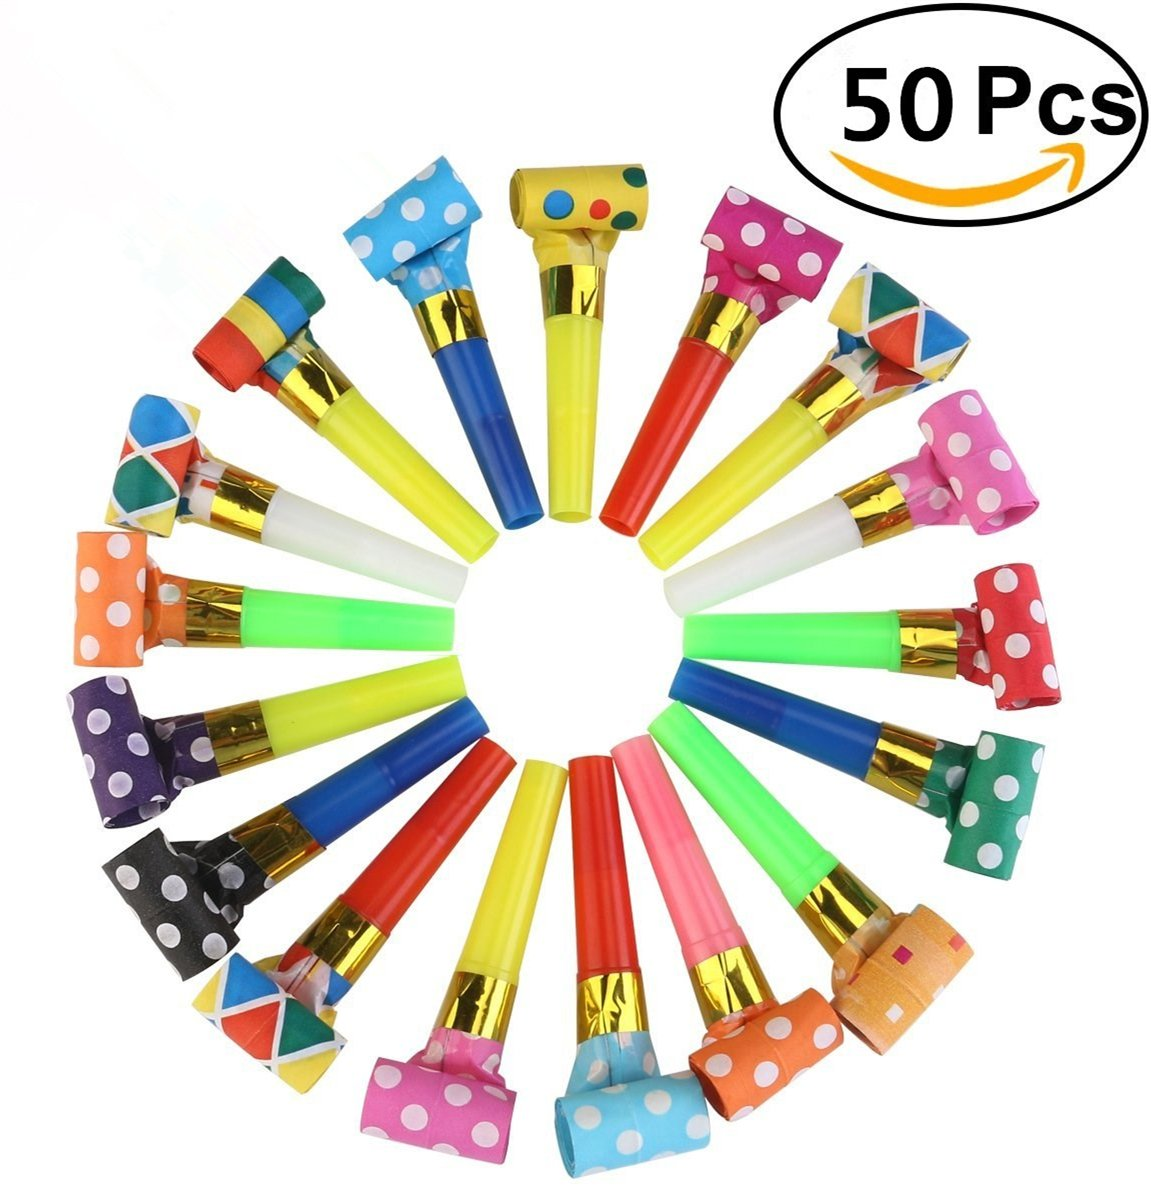 50 Packs music Blowouts Whistles Toys for Birthday Party Favors, Christmas Party, Children Party, Halloween,Party Accessory, New Years Party Noisemakers by Chapter Seven